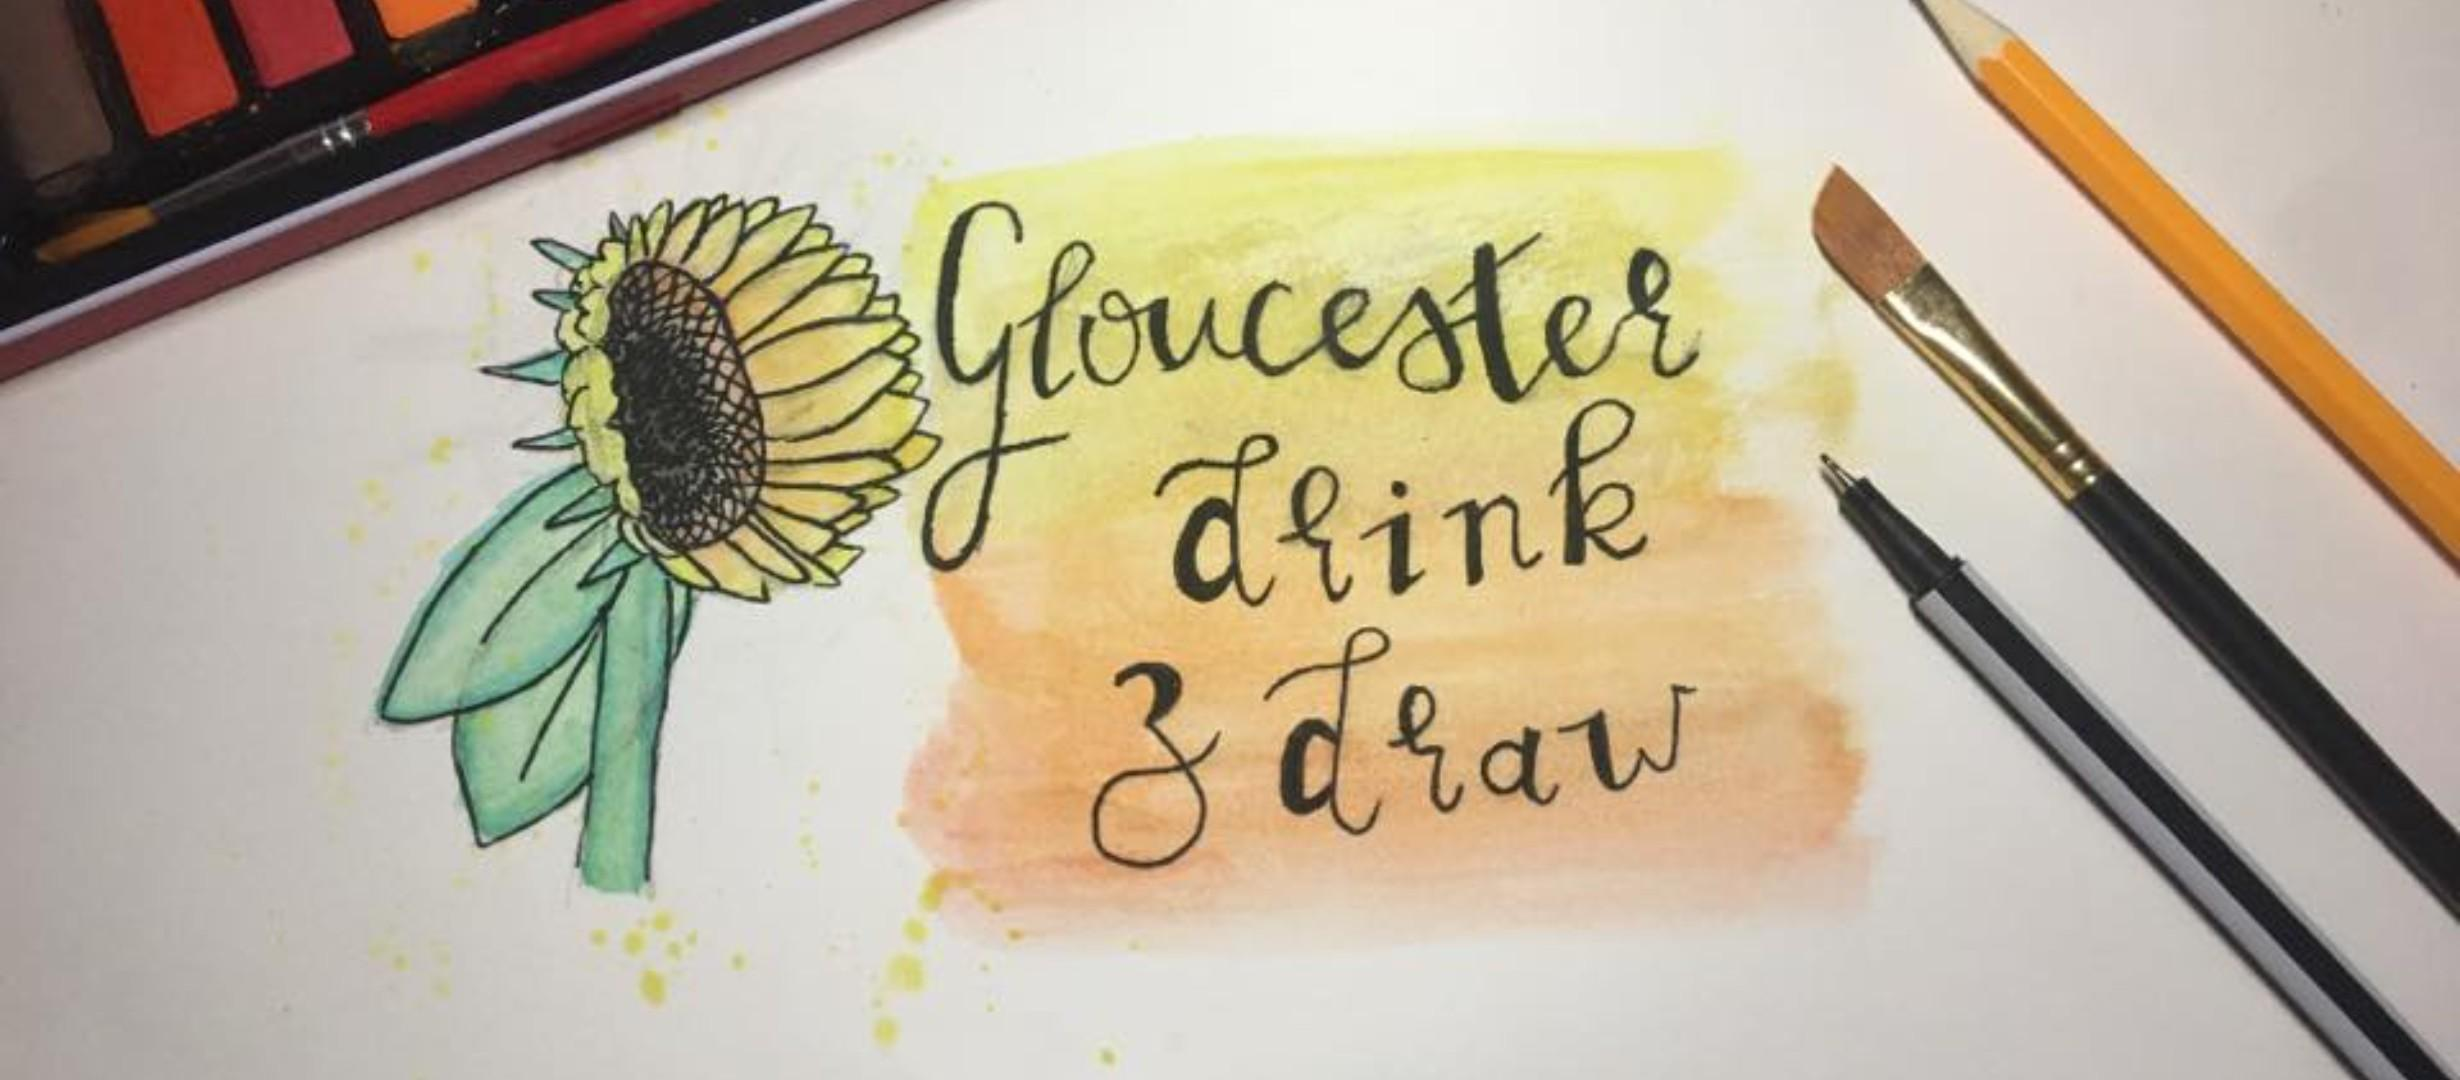 text 'Gloucester drink & draw' on sketch paper with pencil, pen and paintbrush